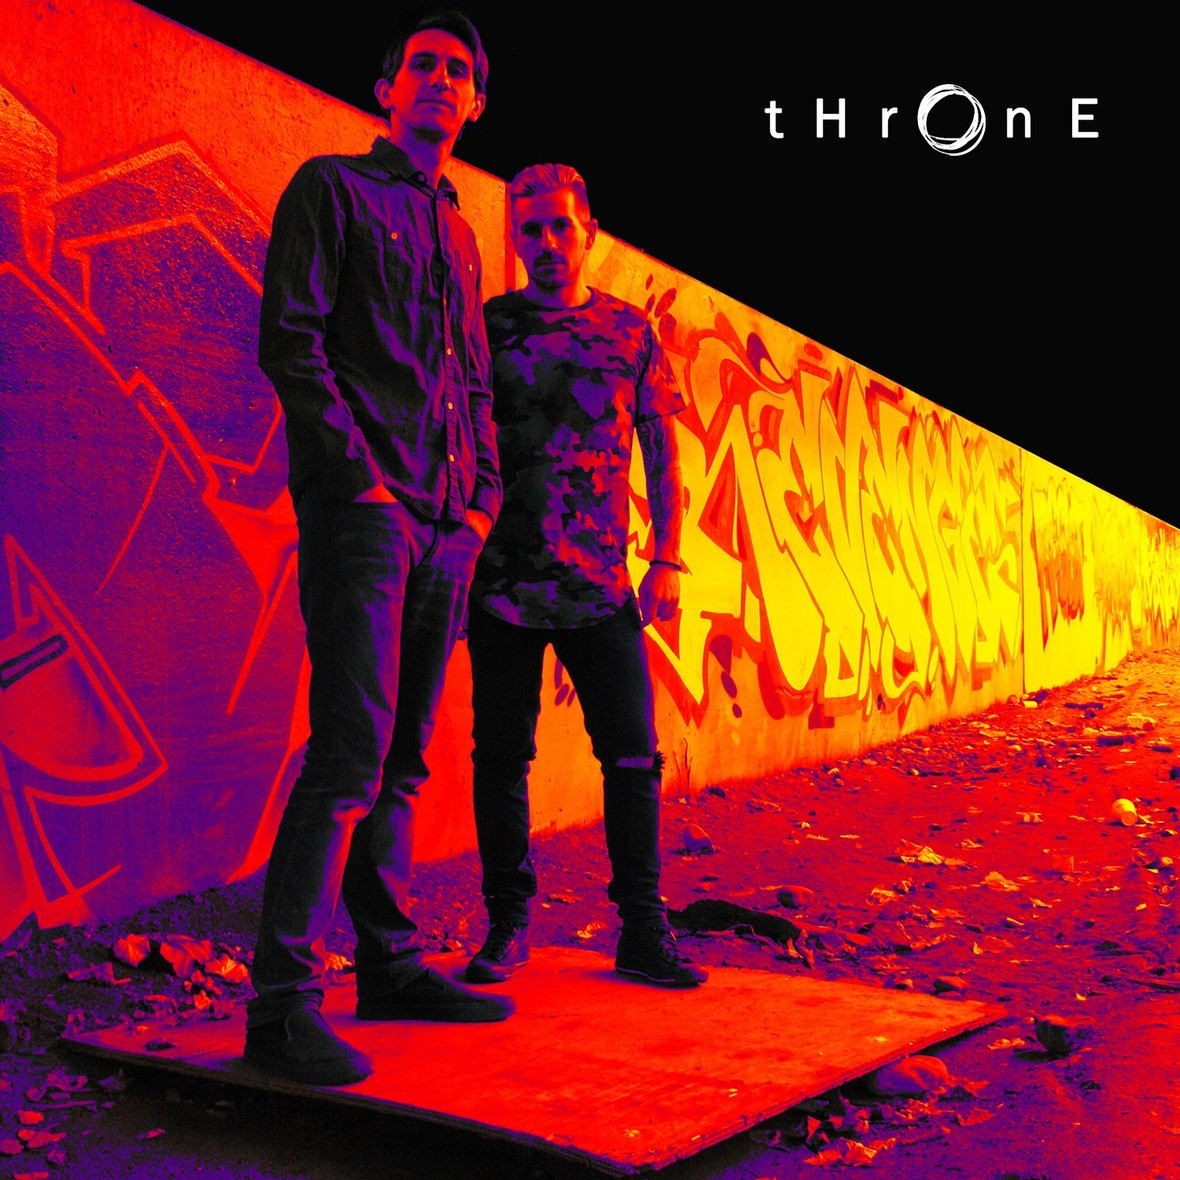 tHrOnE Releases Self-Titled Album